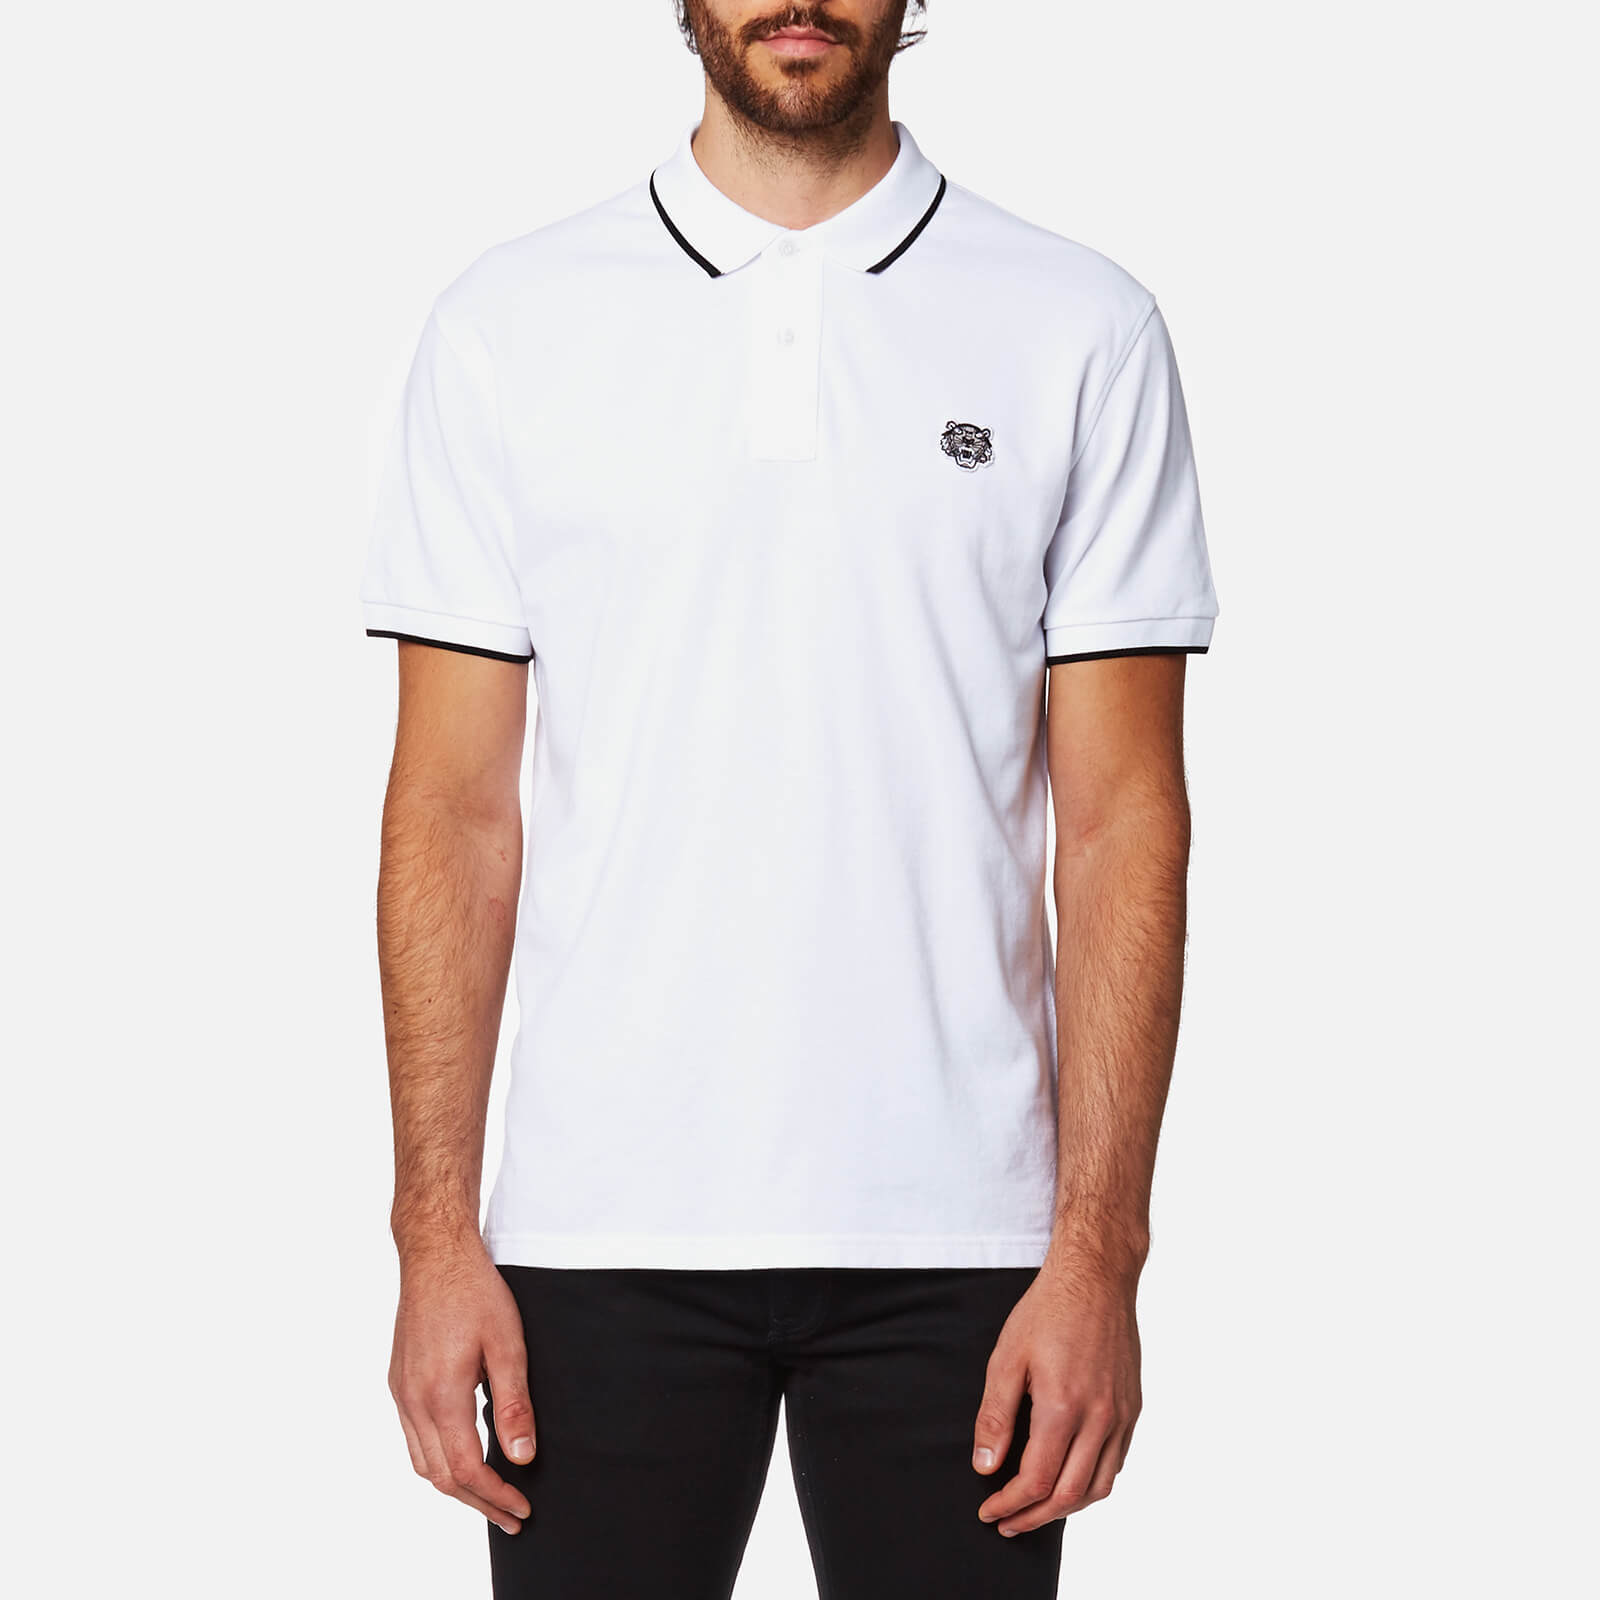 5fc7ac9121 KENZO Men's Slim Fit Polo Shirt - White - Free UK Delivery over £50